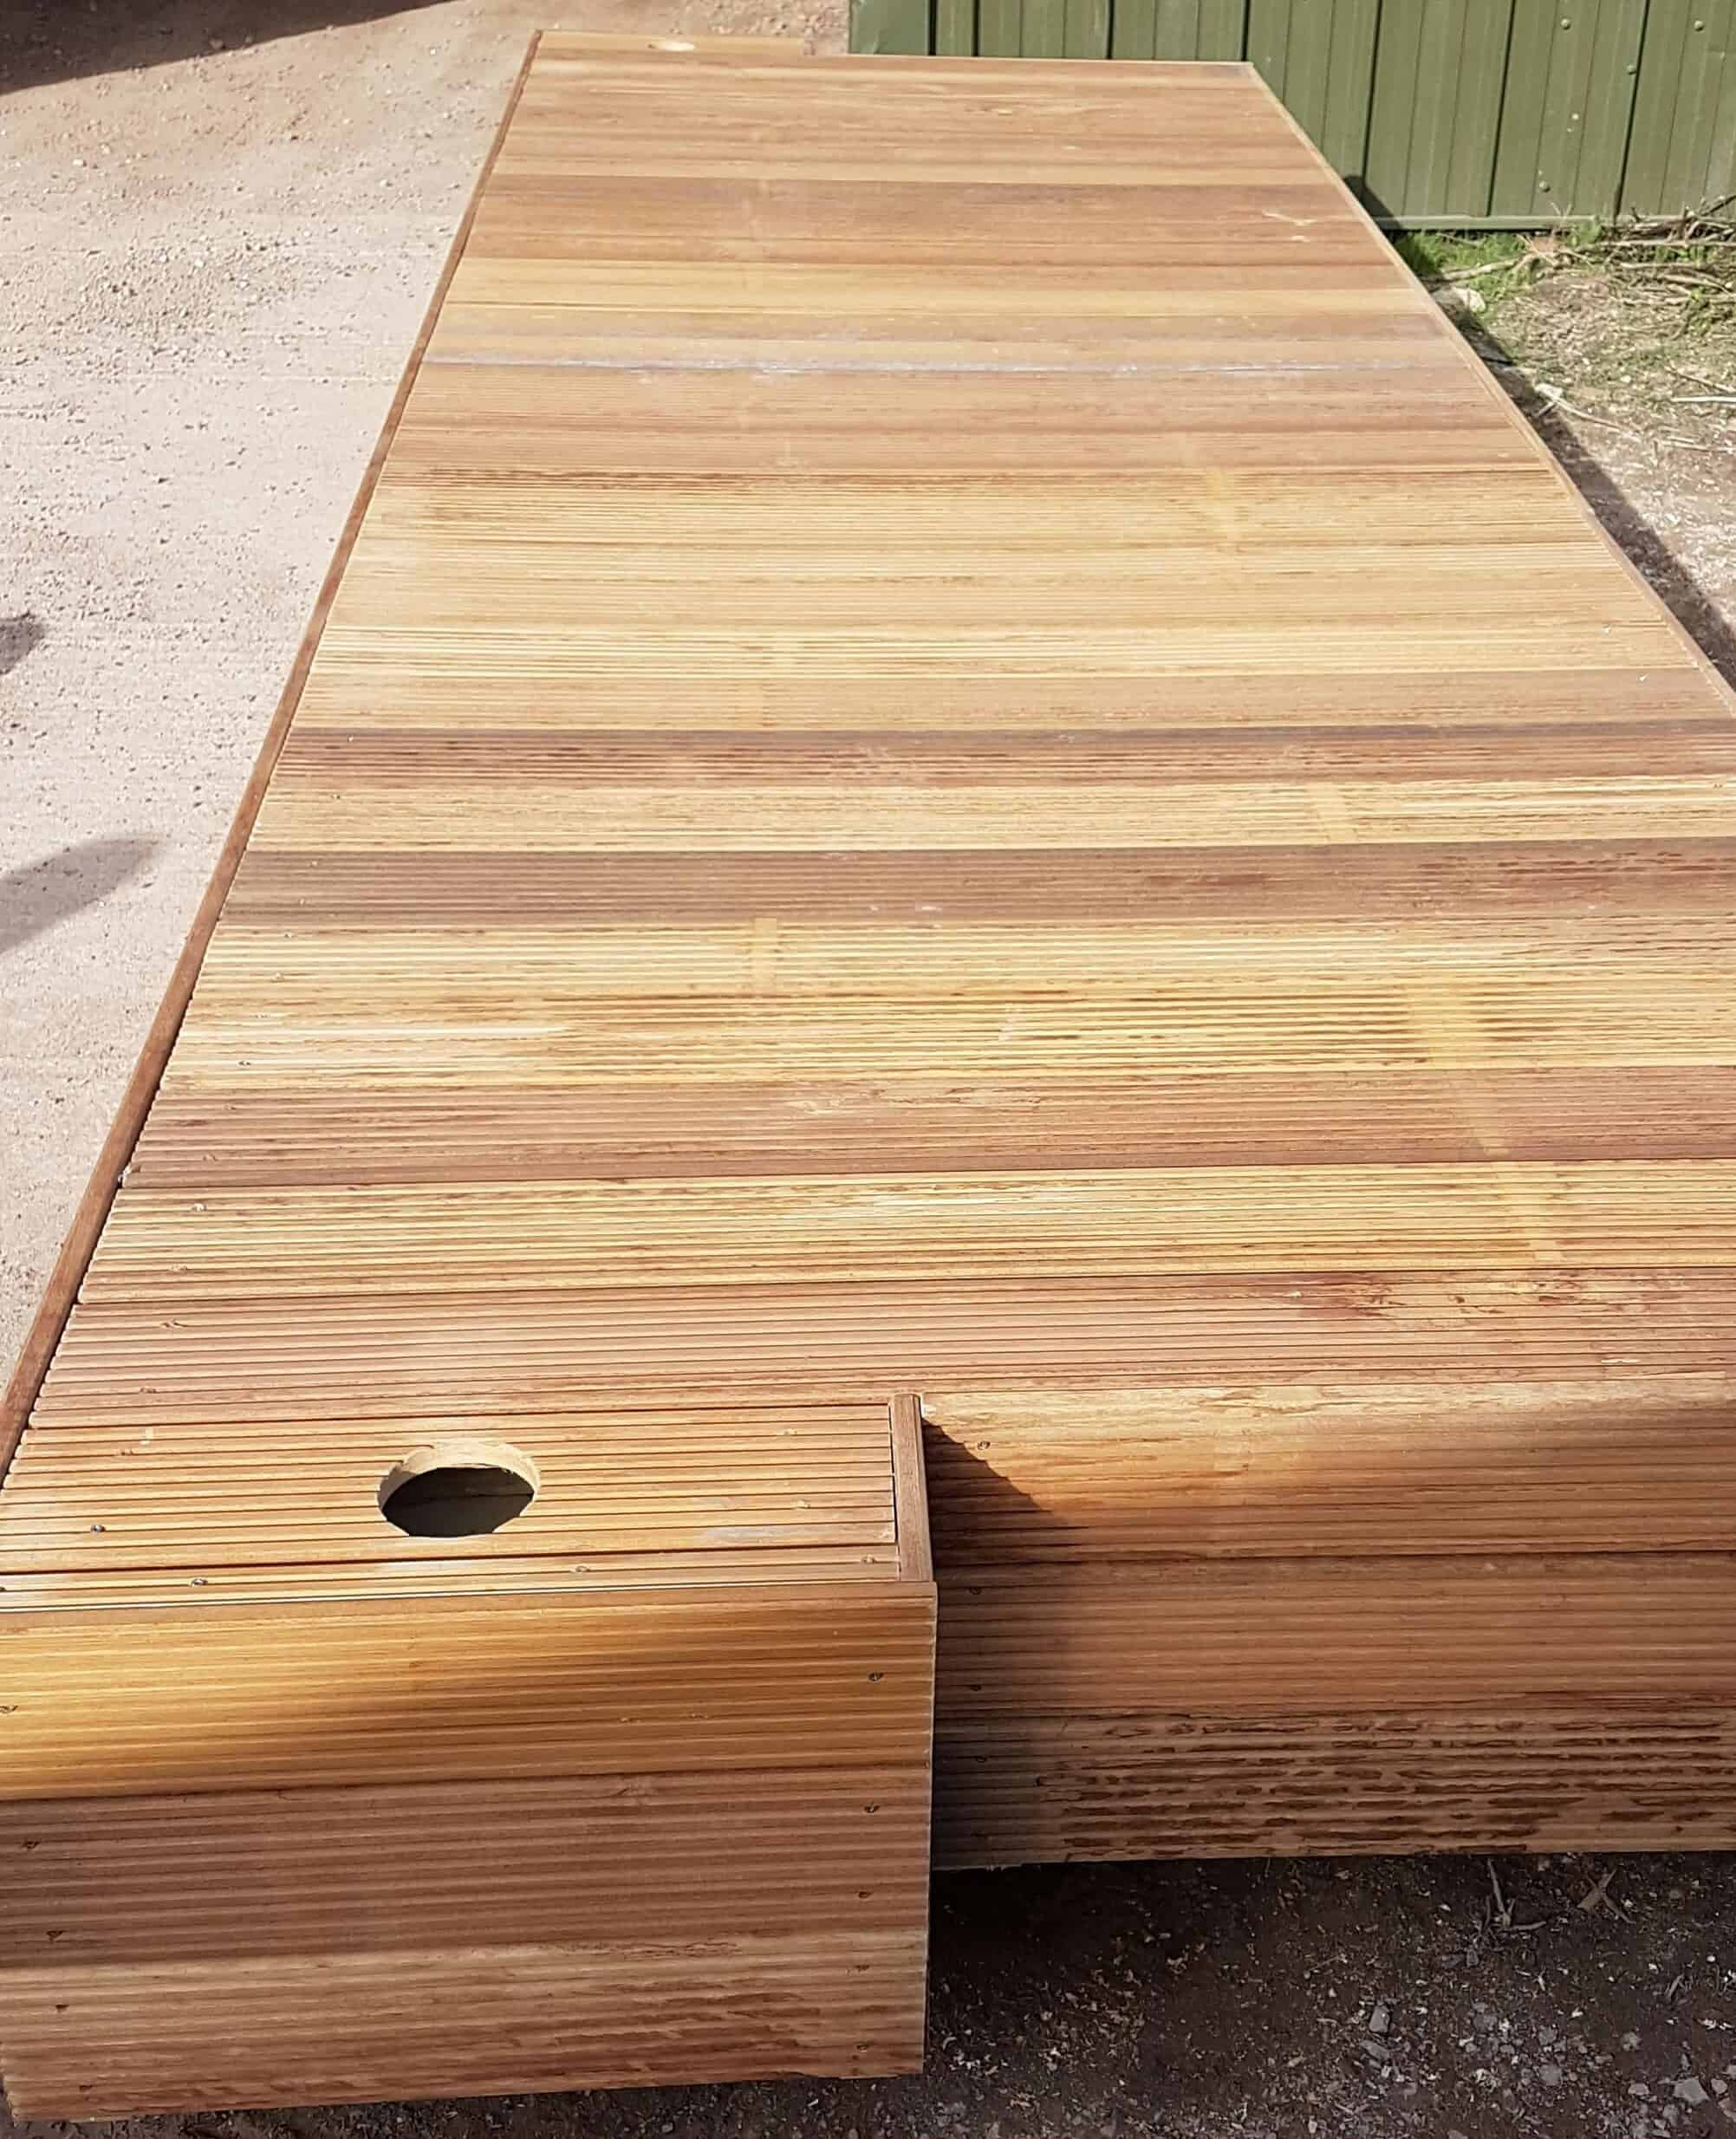 Decked pontoon with pile holes